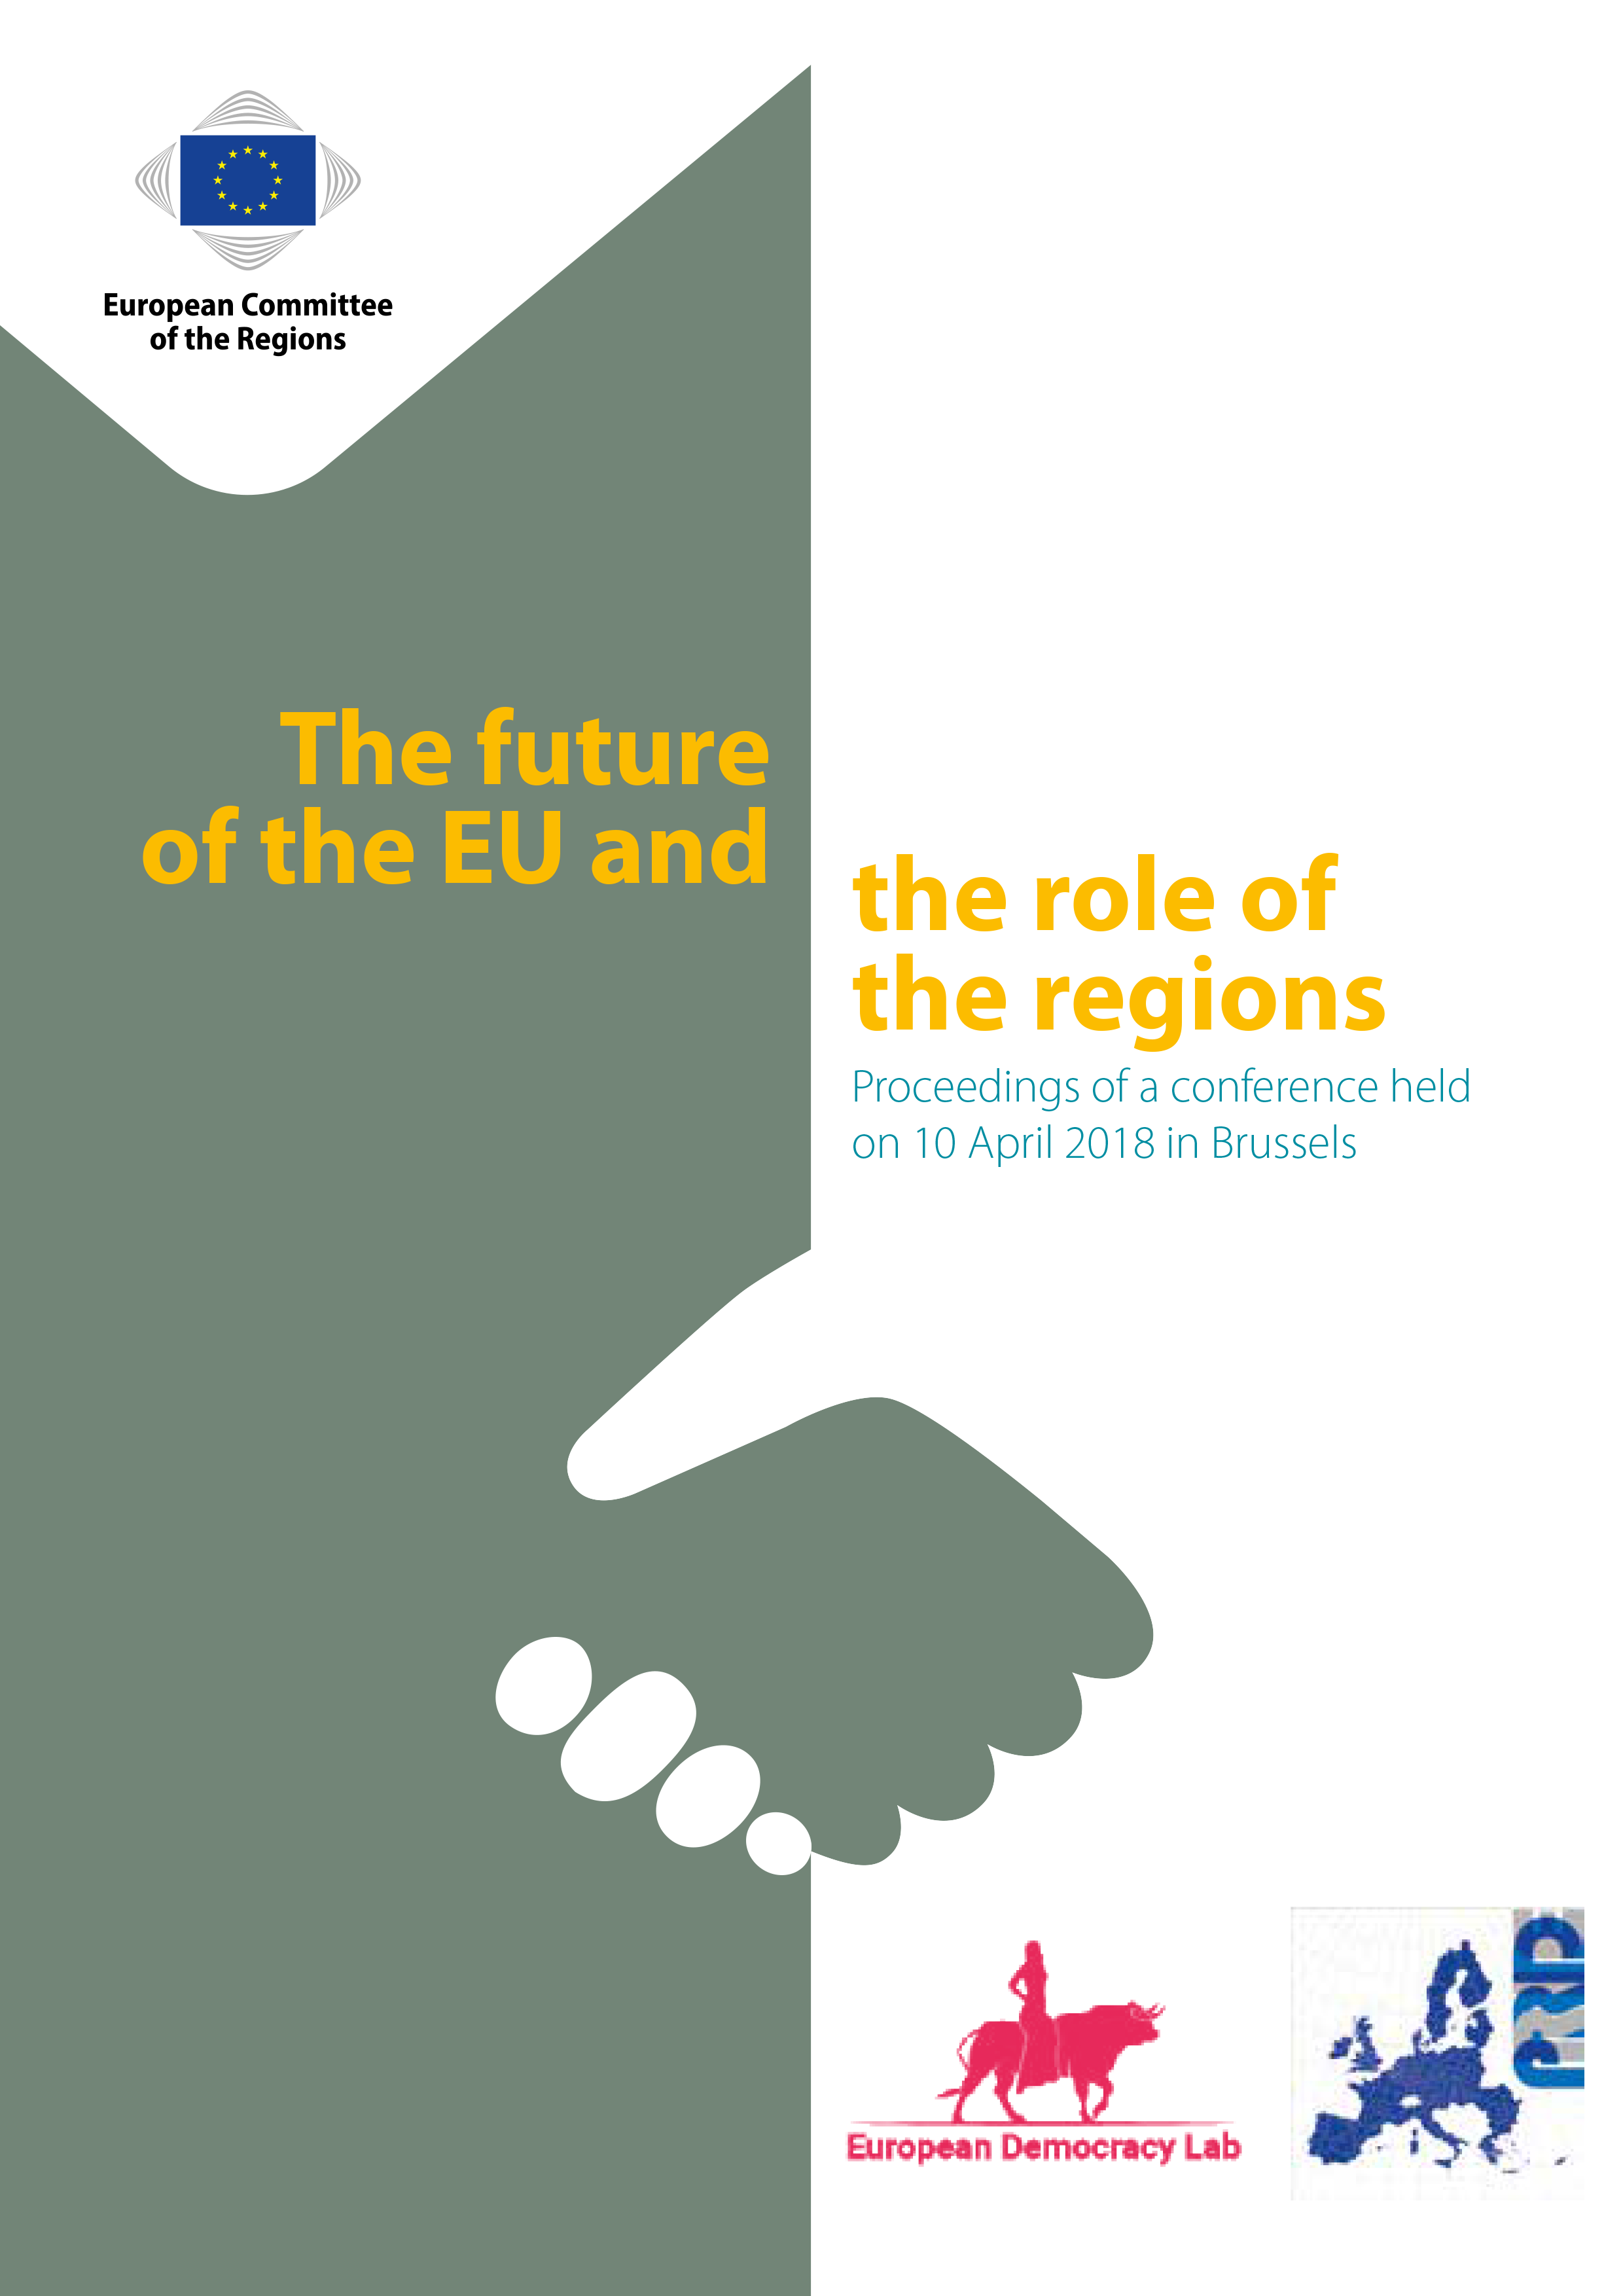 The future of the EU and the role of the regions